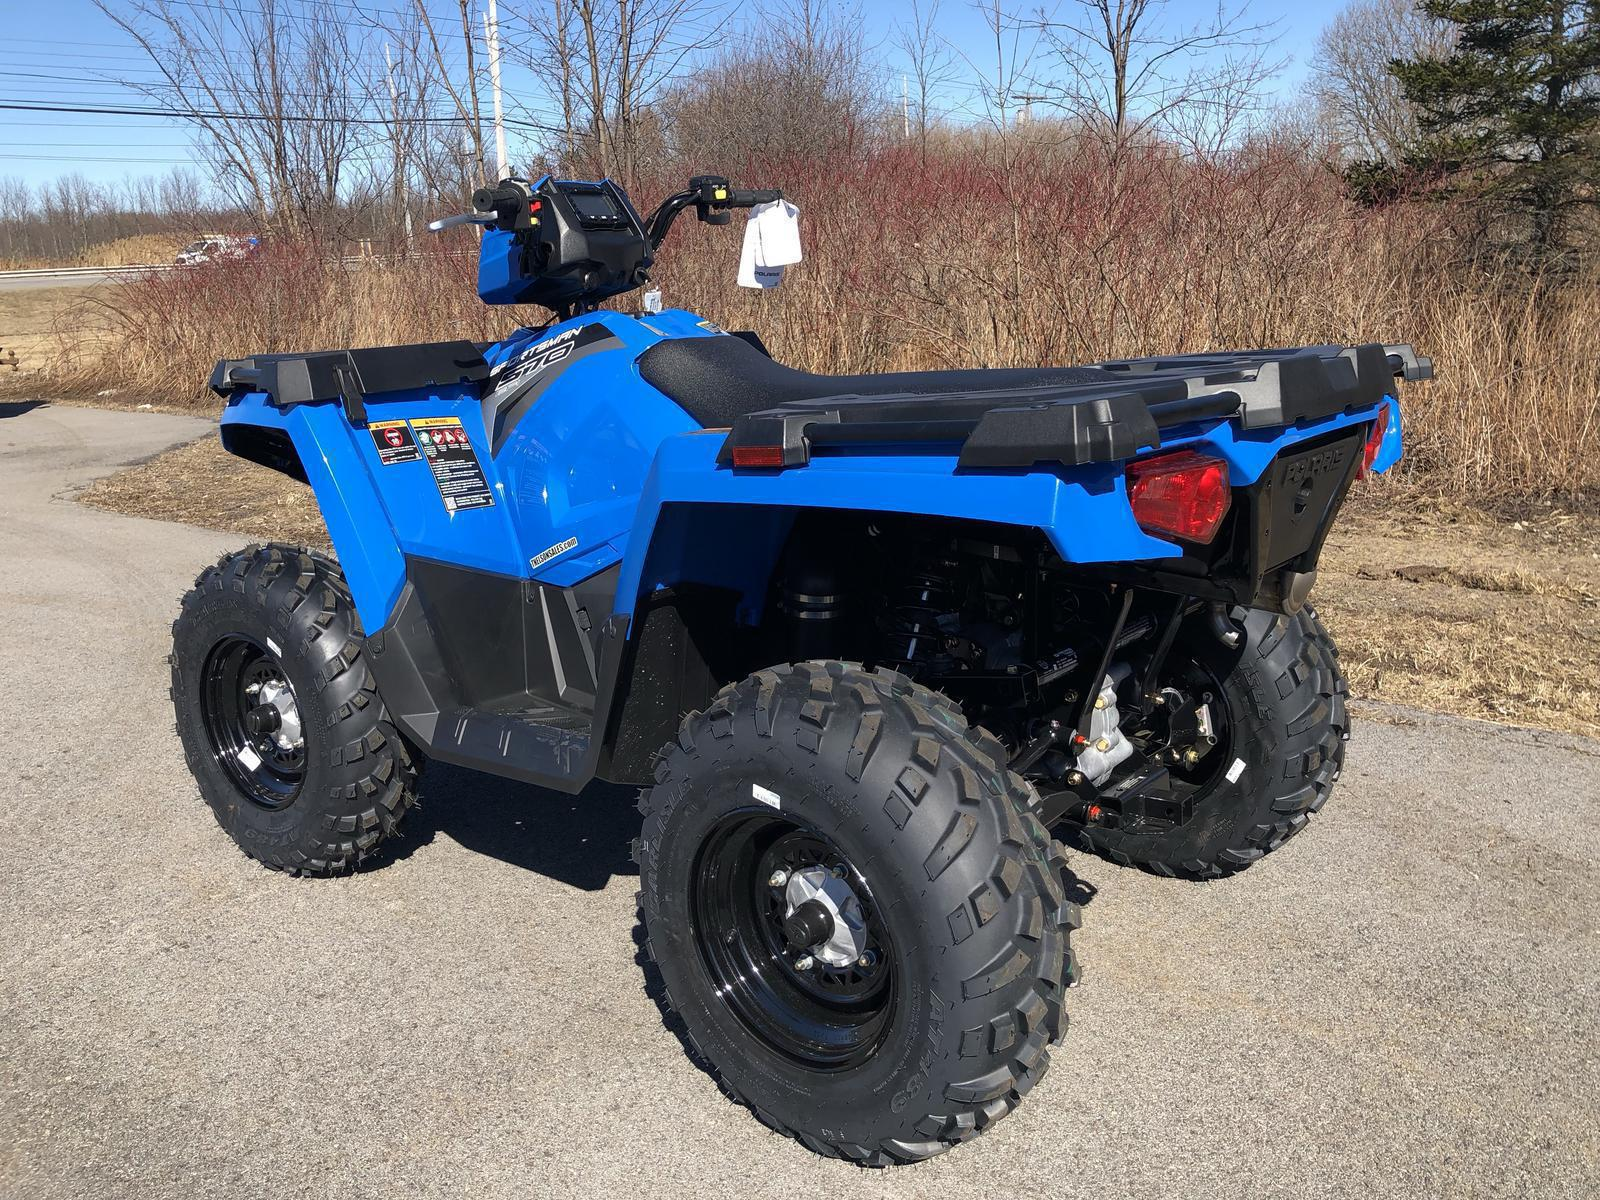 2019 Polaris Industries Sportsman 570 Velocity Blue  Plus Freight  3 99%  for 36 Months